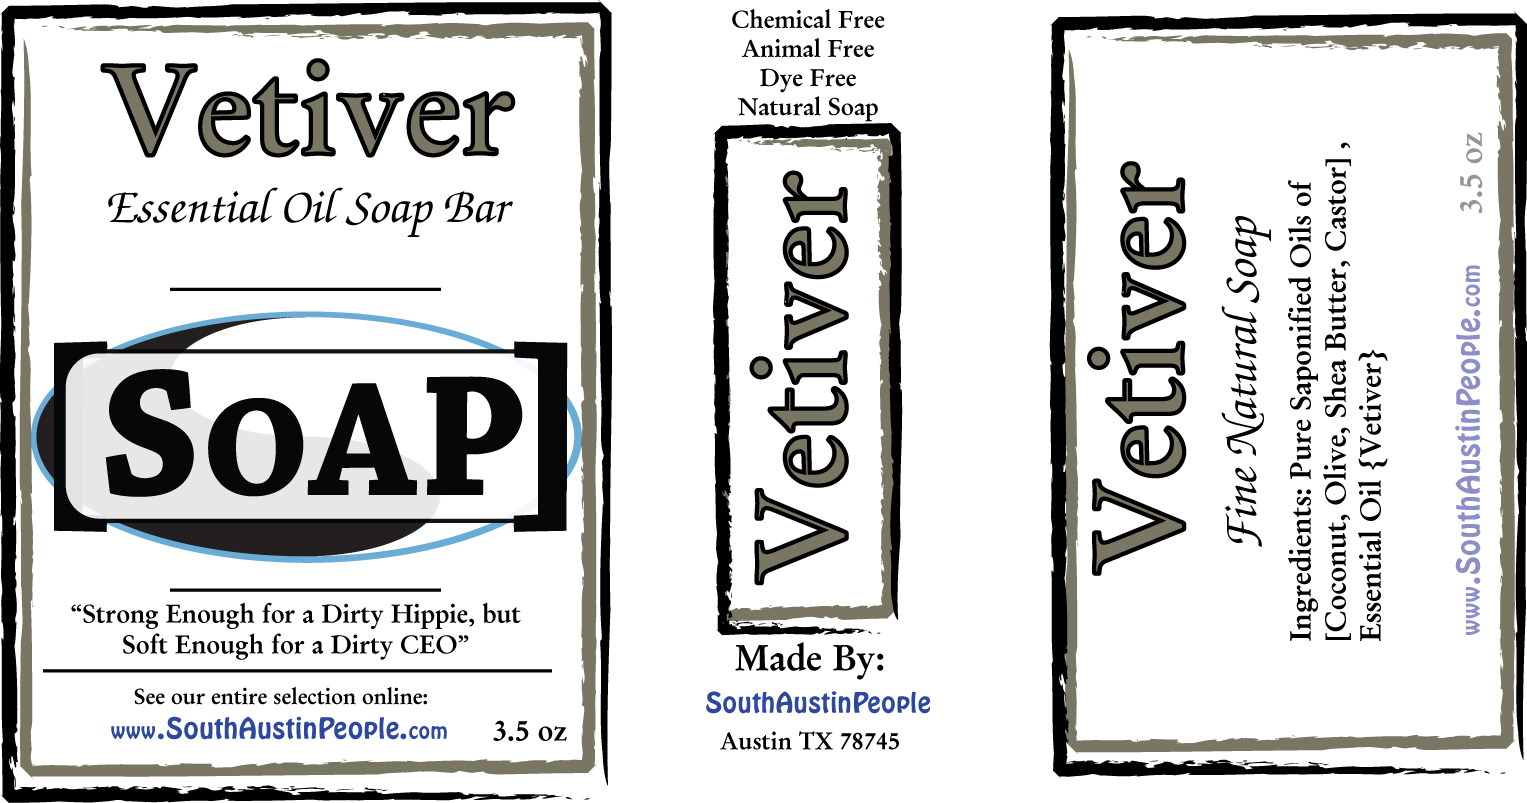 Vetiver SoAP Bar